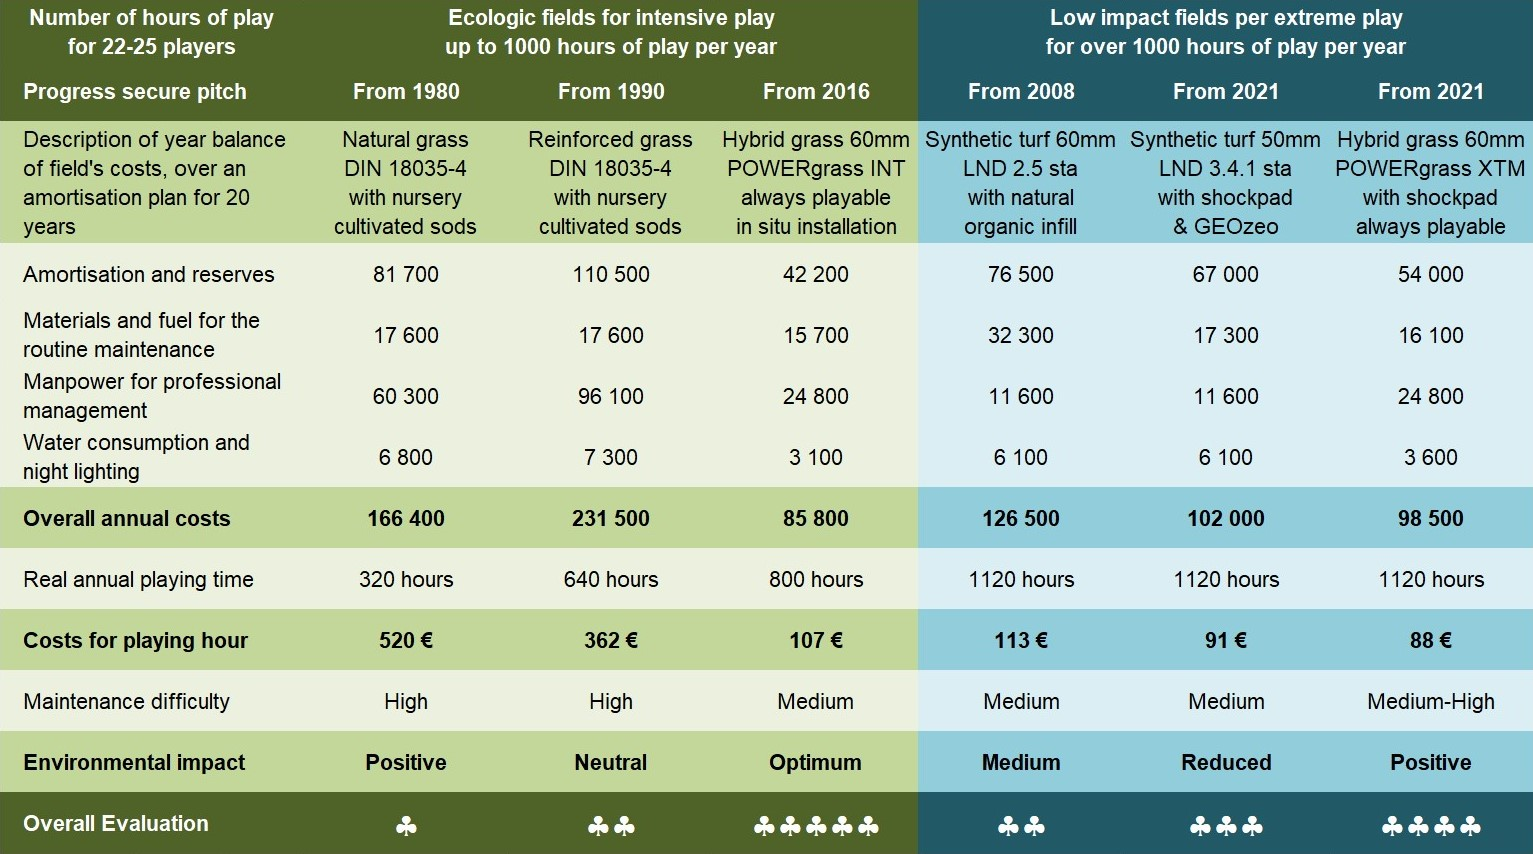 Comparison on natural, reinforced, synthetic and hybrid grass